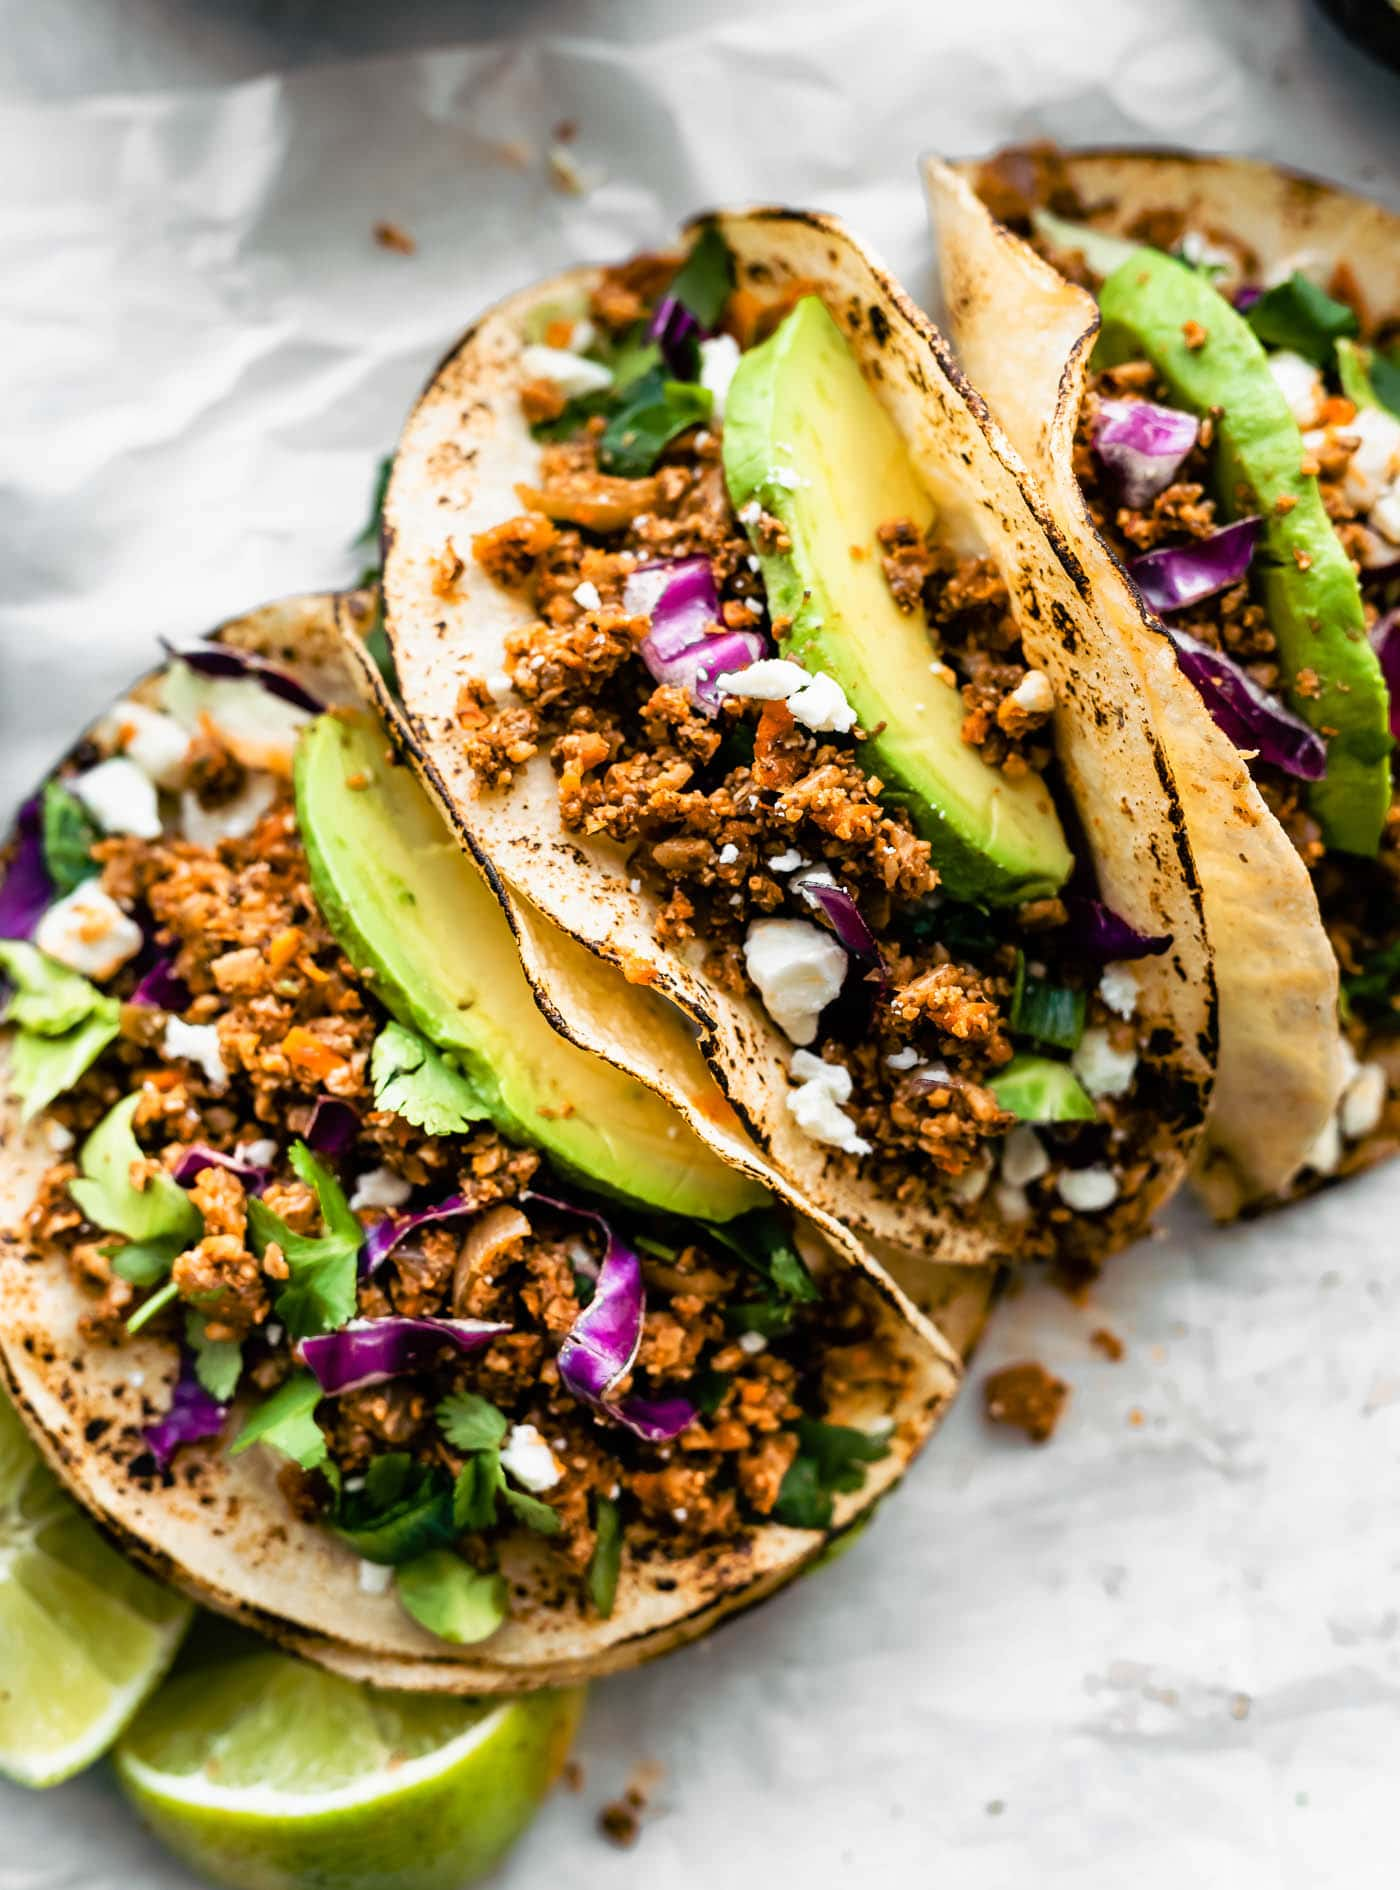 Close up image of charred tortillas with vegan taco meat served as soft shell tacos with purple cabbage and avocado slices.